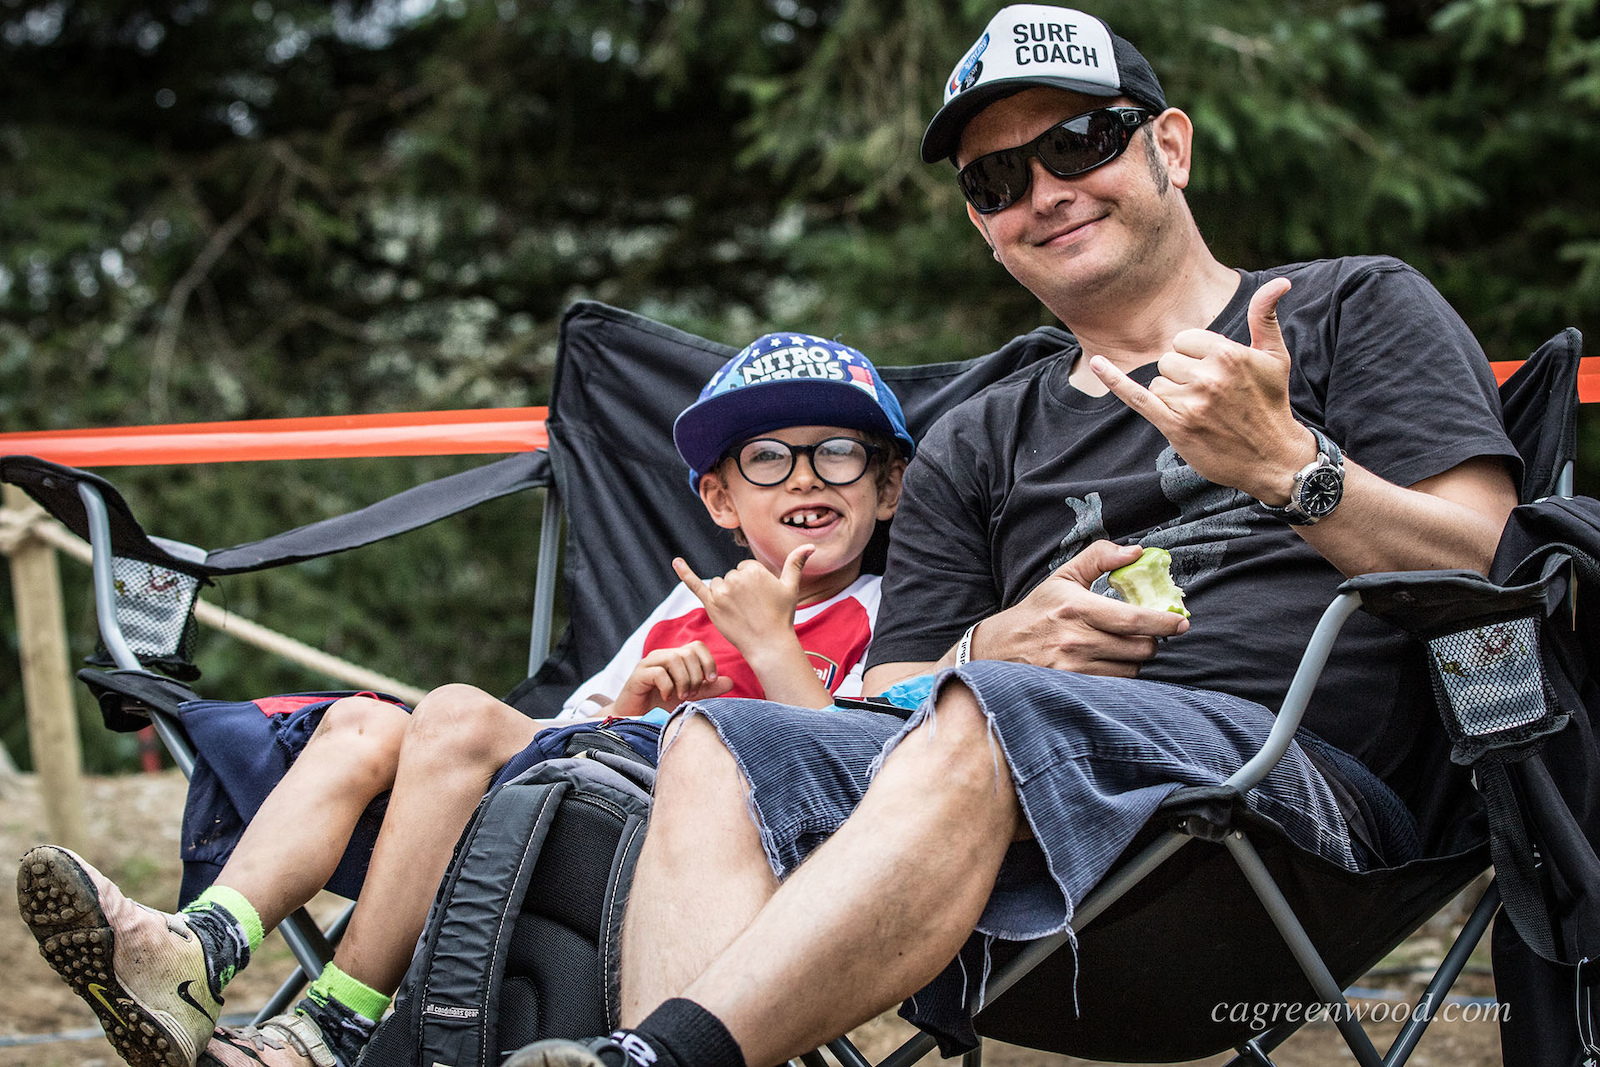 Fans of all ages were out on the hill enjoying the action. These guys had the best seat in the house parked up in front of the dirty ferns step up.